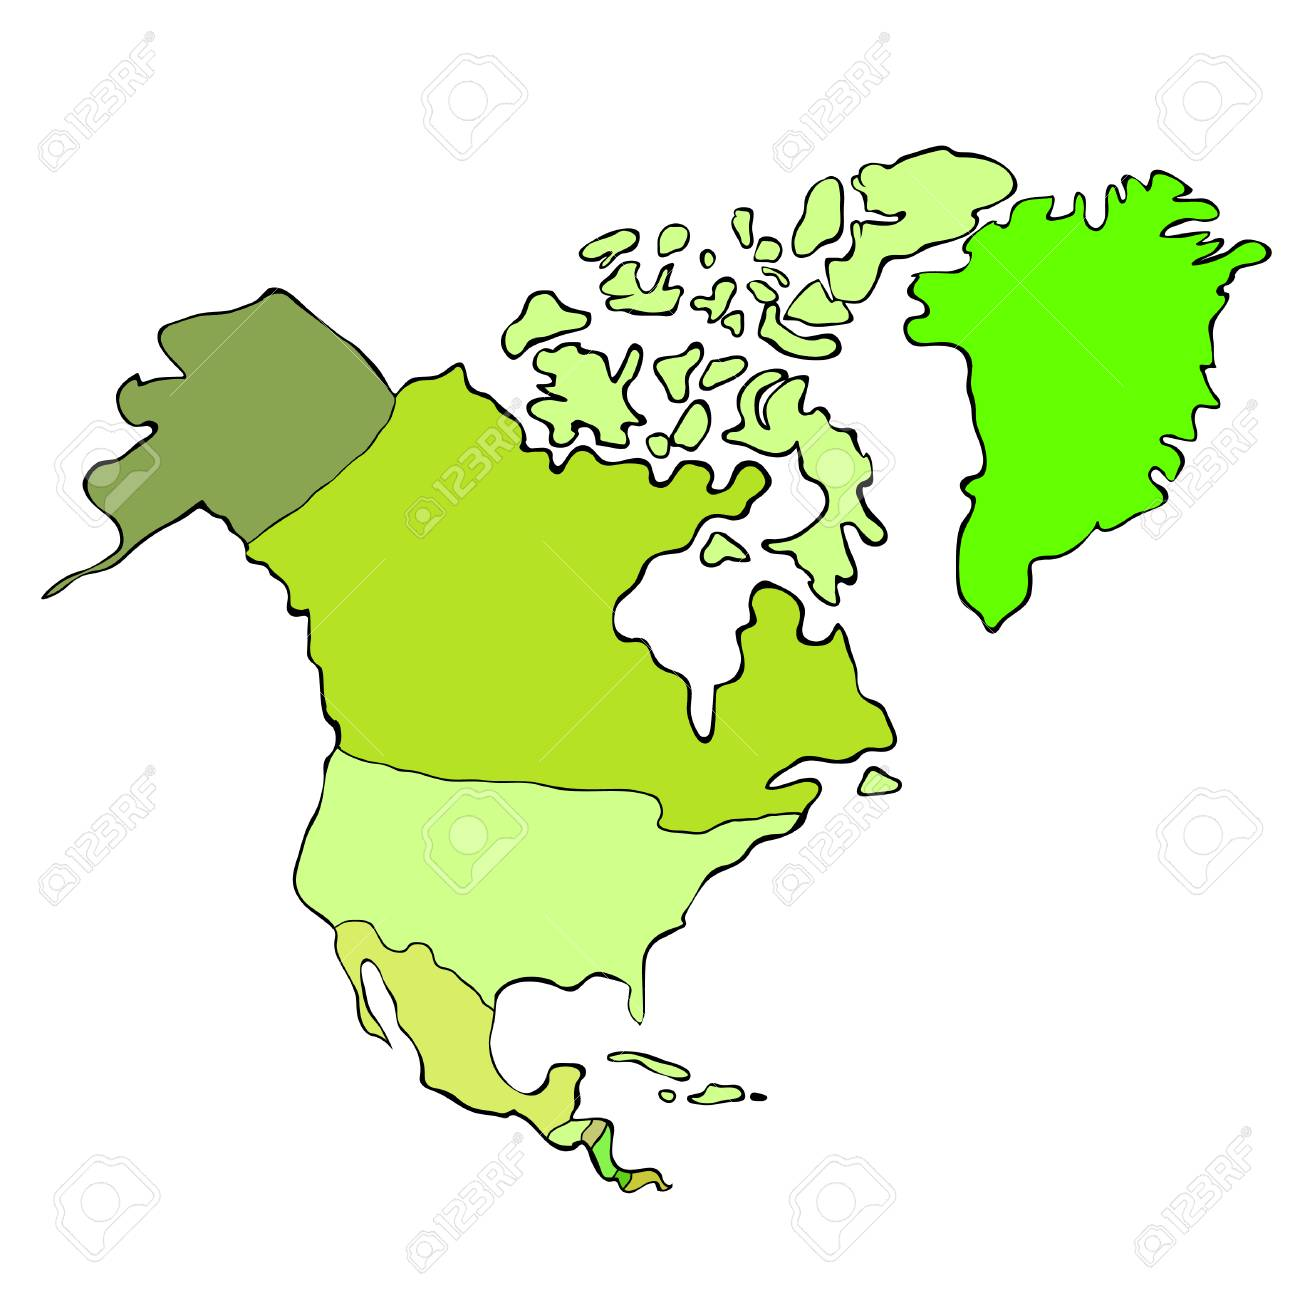 map of the world continent north america vector illustration royalty rh 123rf com north america vector map with states and provinces north america vector